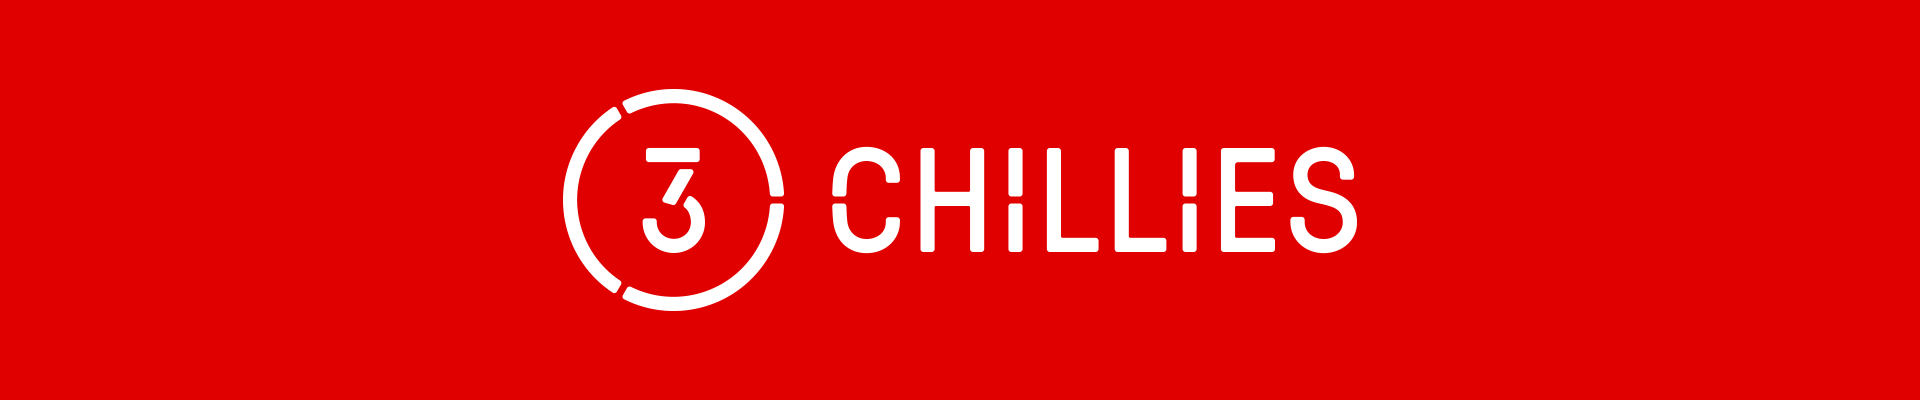 rebranding 3chillies